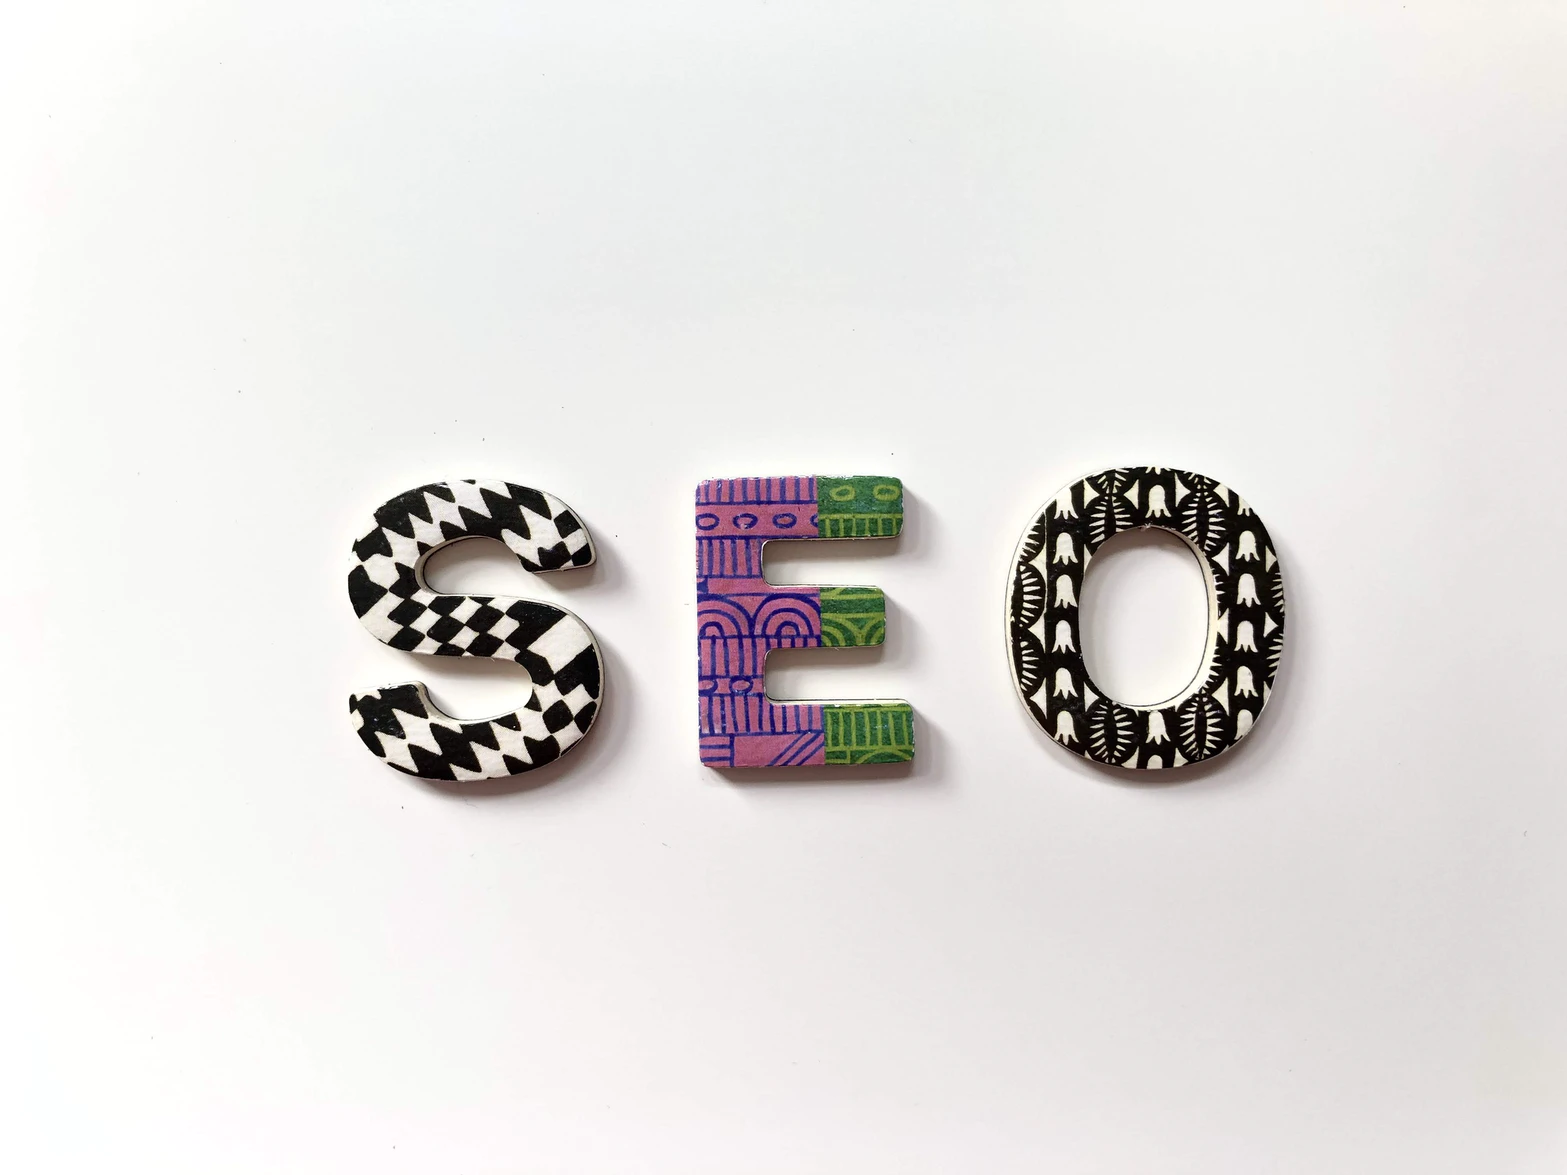 SEO is very important